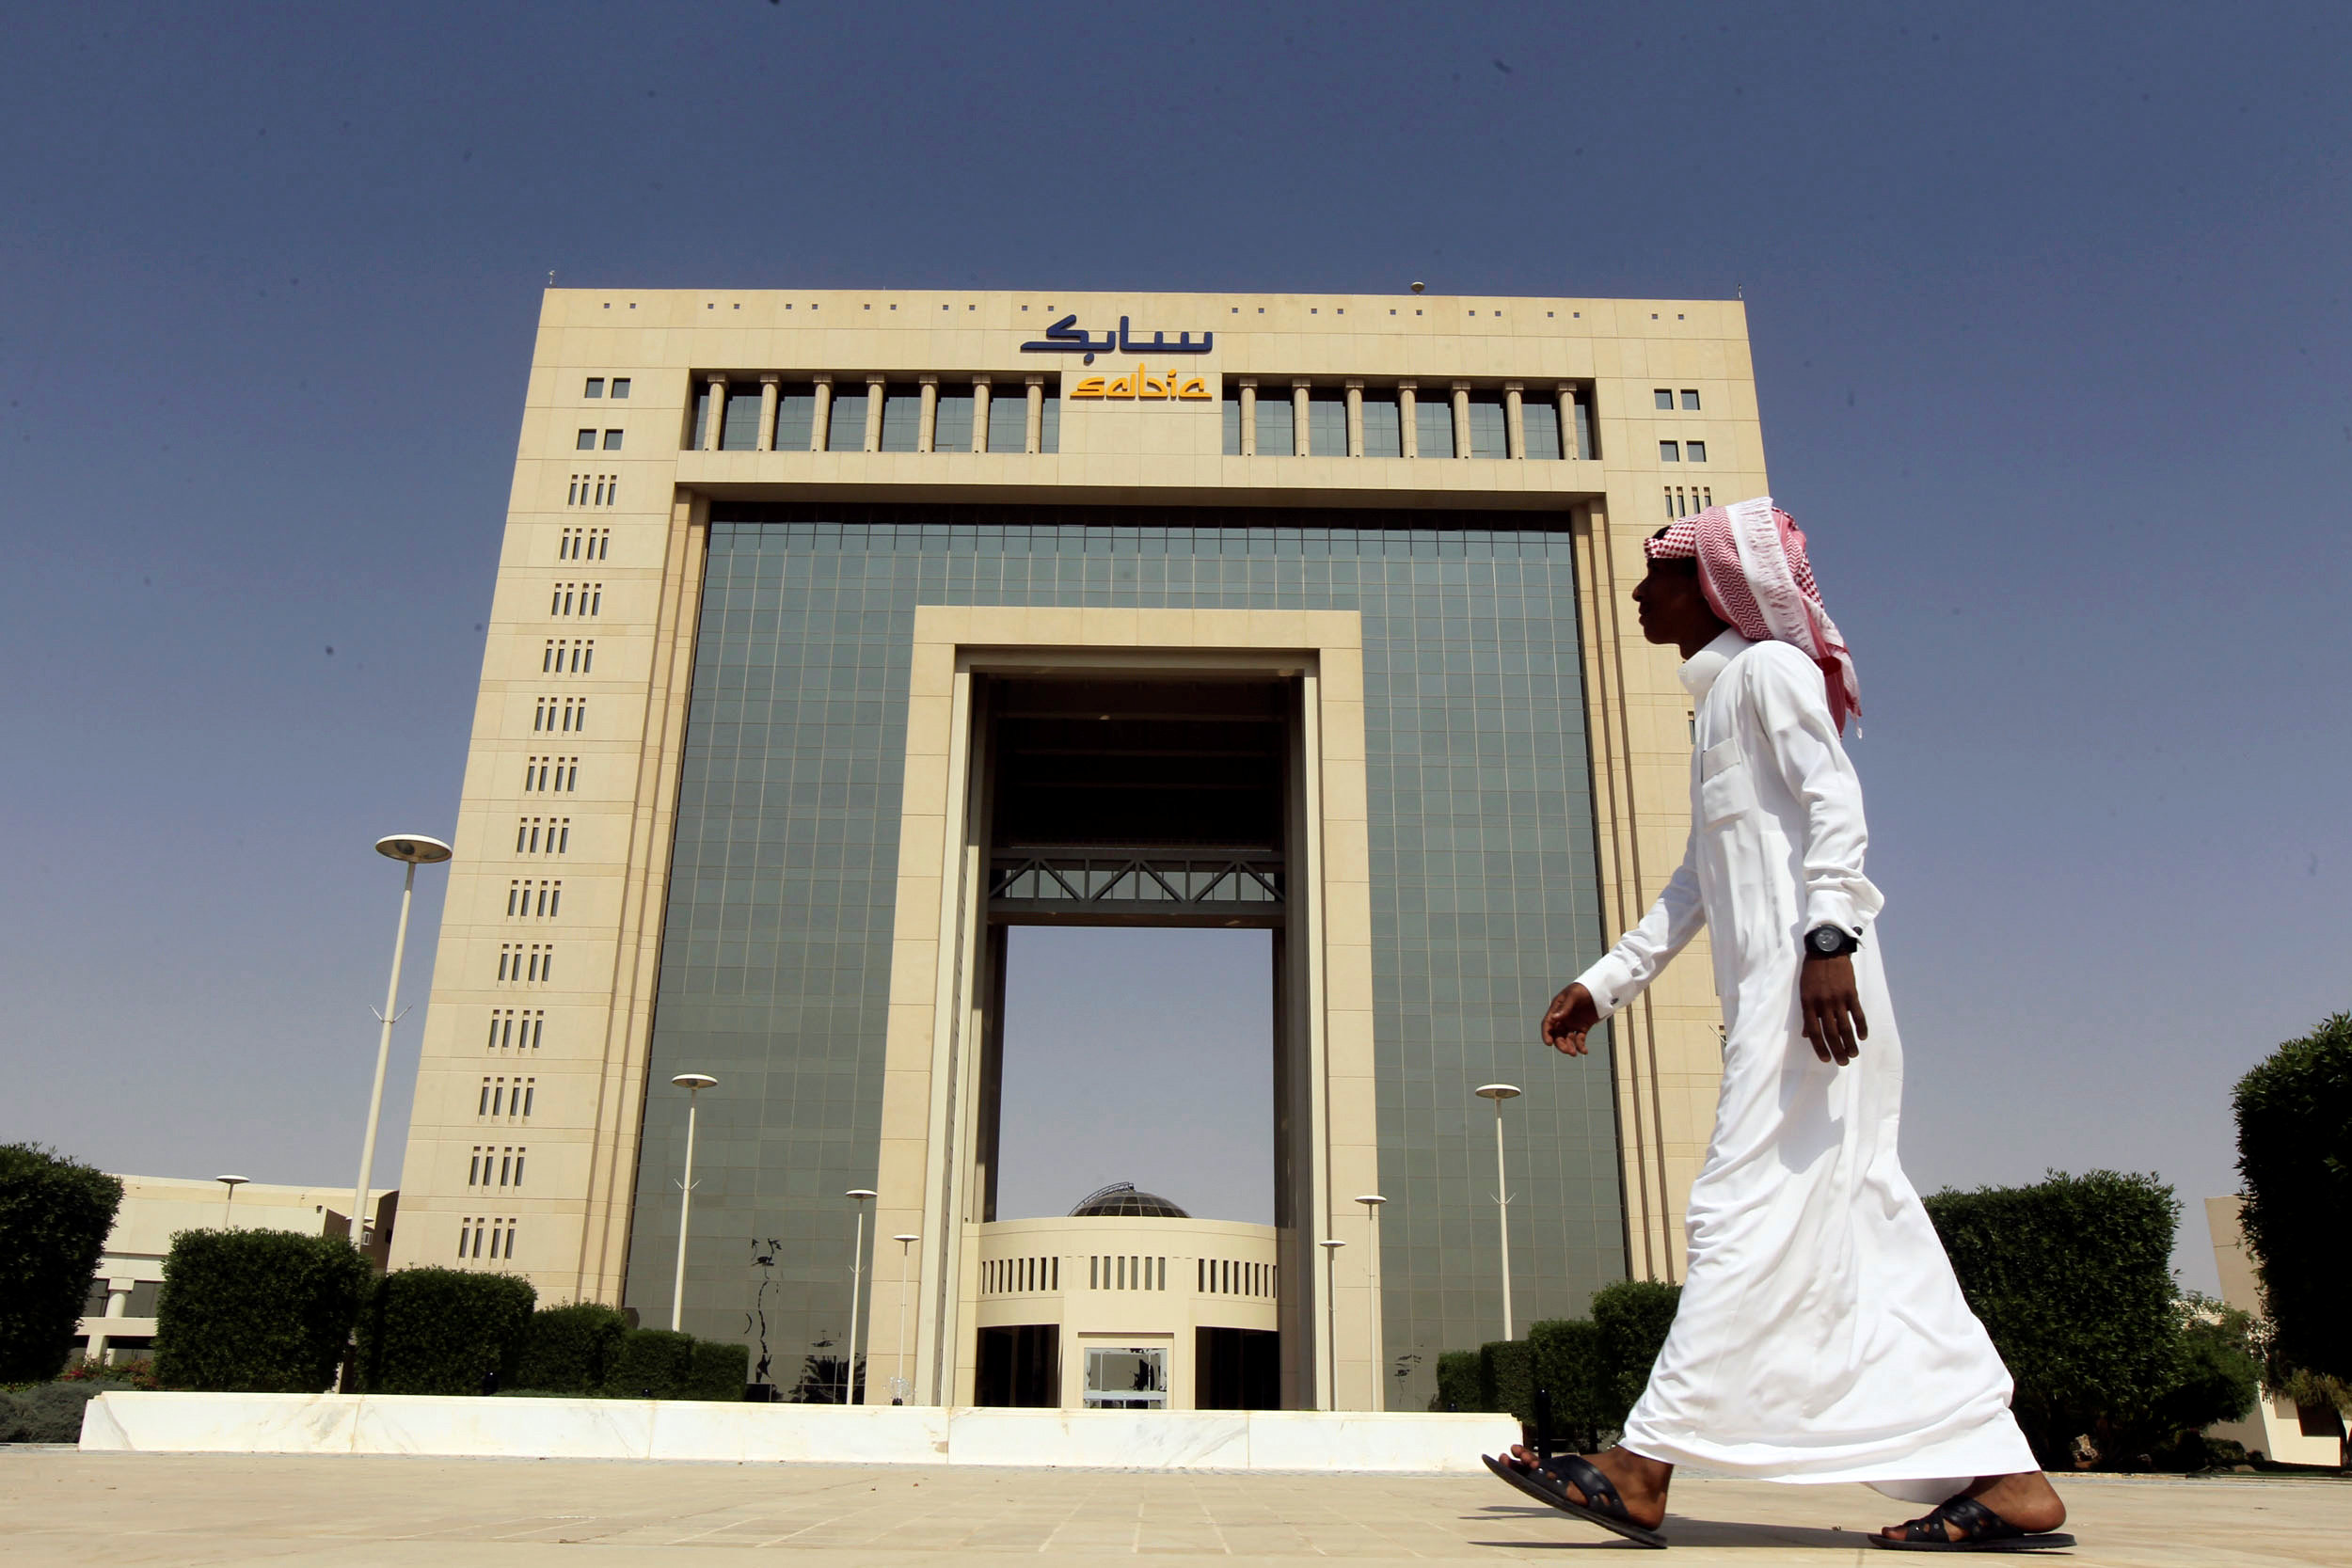 A man walks past the headquarters of Saudi Basic Industries Corp (SABIC) in Riyadh. (Reuters)